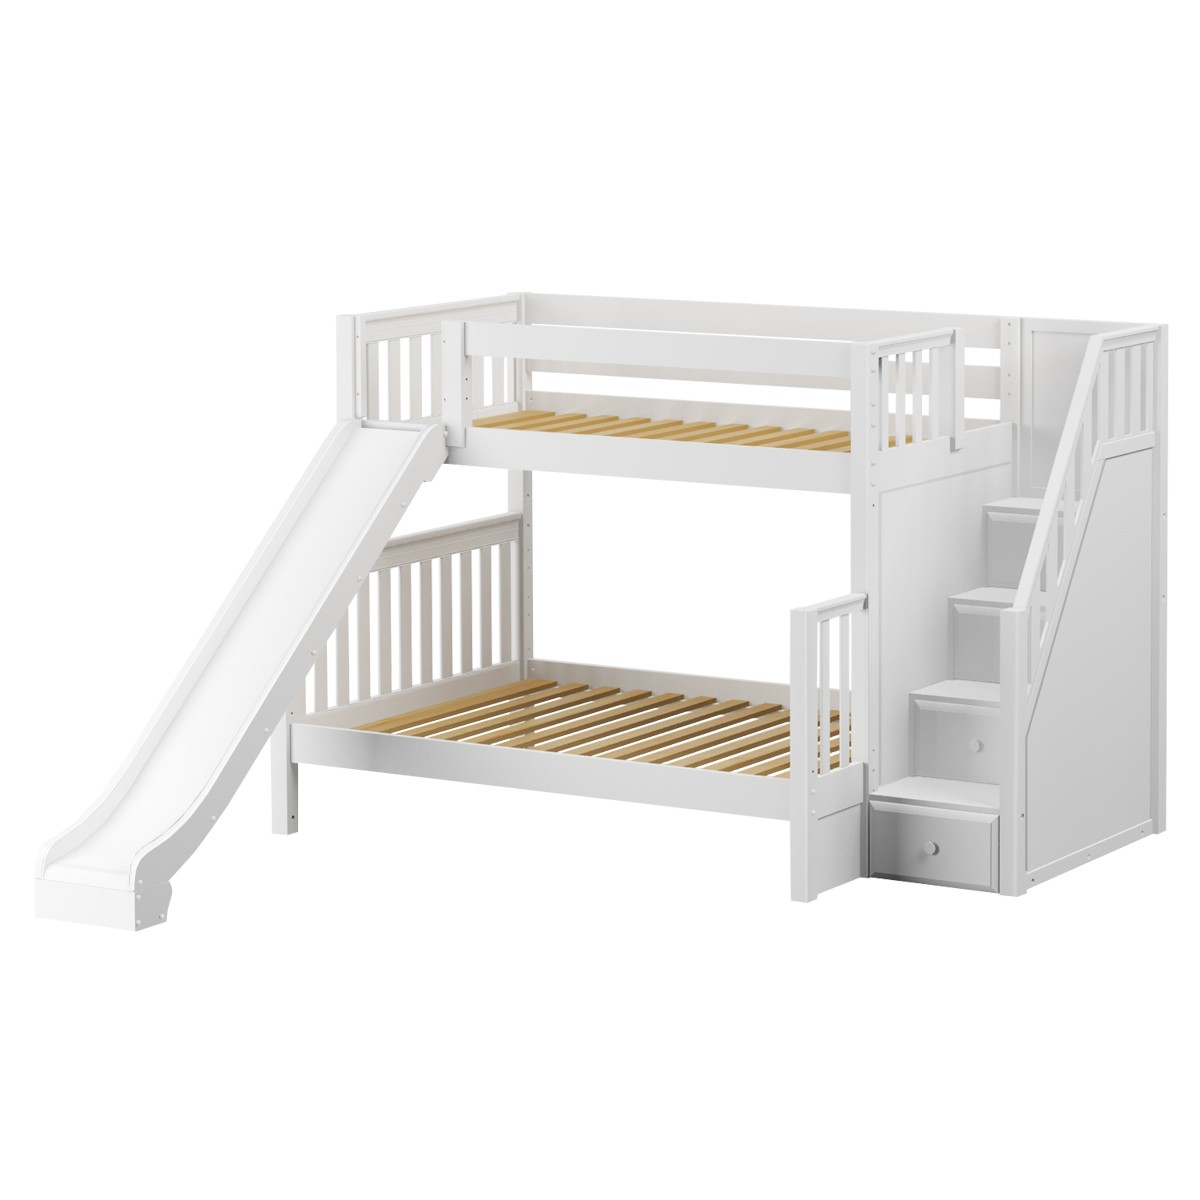 Picture of: Foxtrot Med Tof Bunk Bed By Maxtrix Kids White Slats Stairs Slide